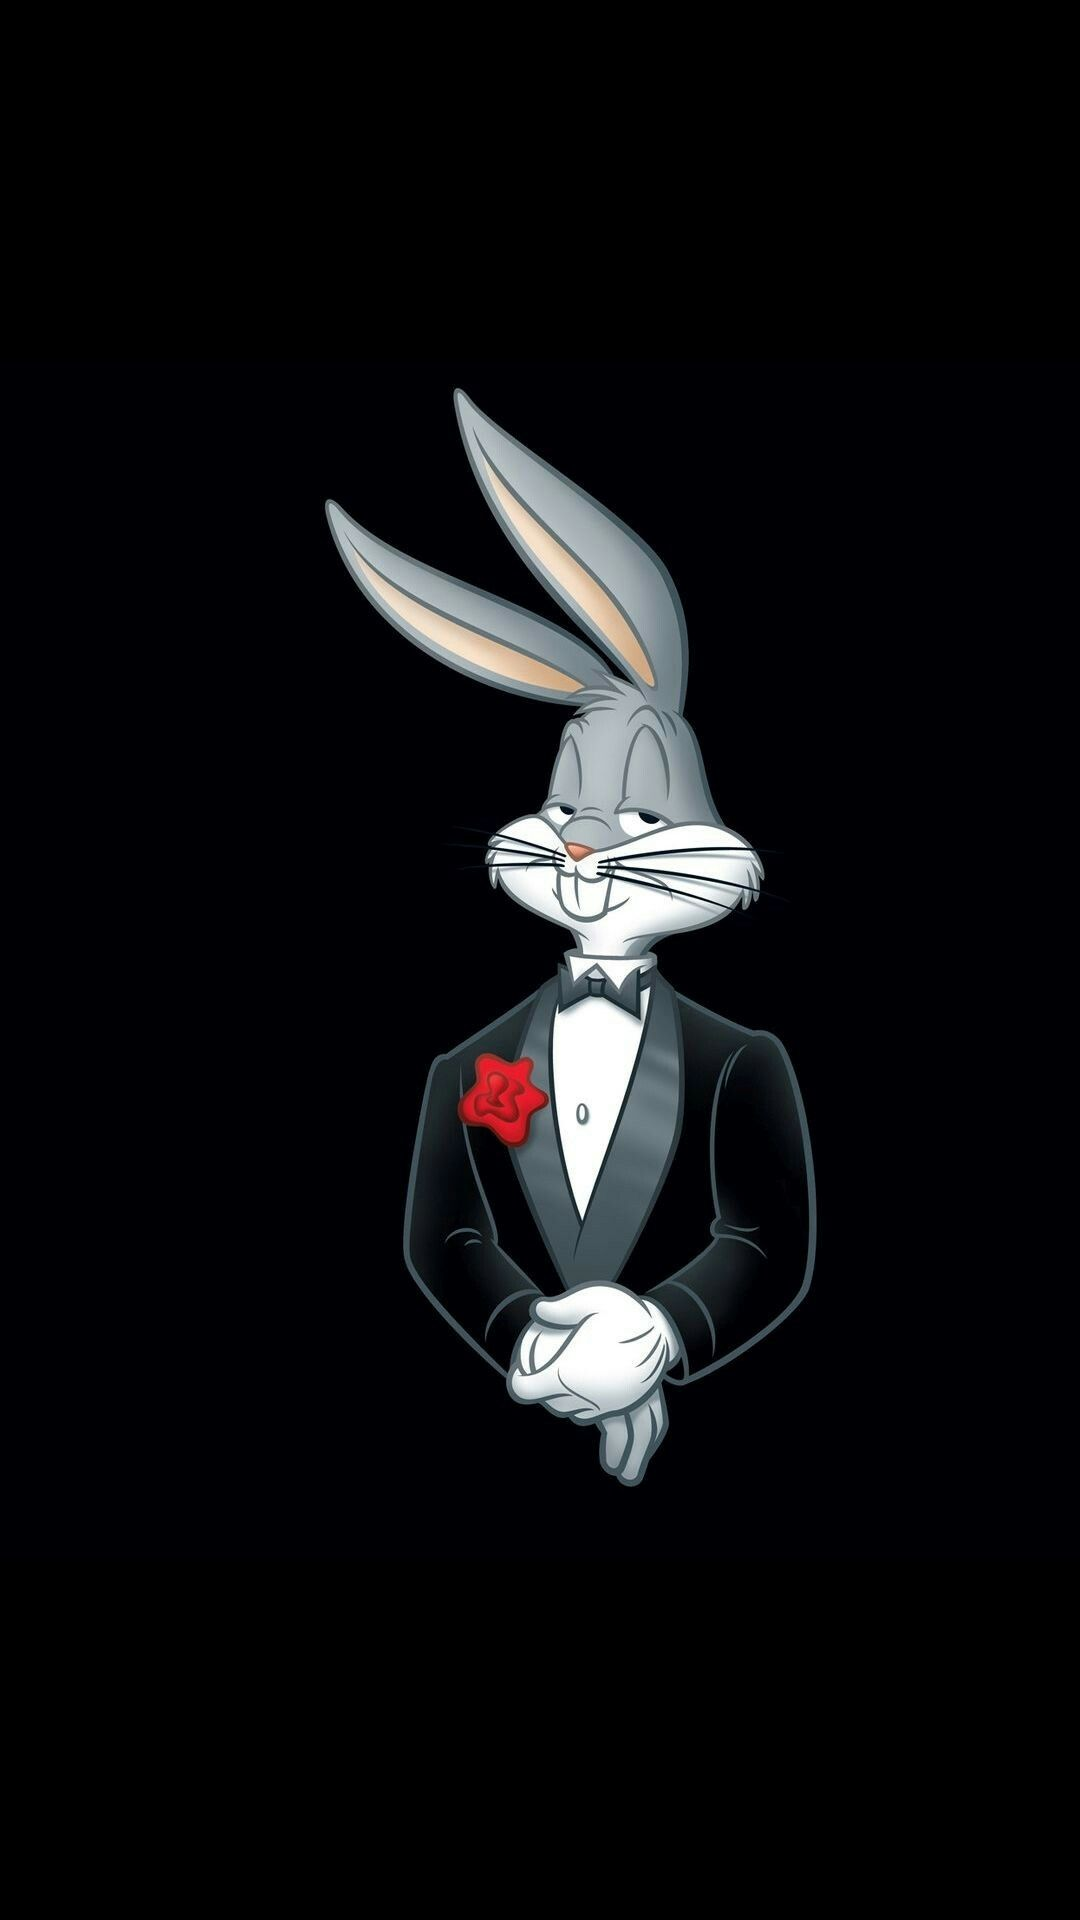 Pin By Brahim B On Wallpapers Bunny Wallpaper Disney Wallpaper Cartoon Wallpaper